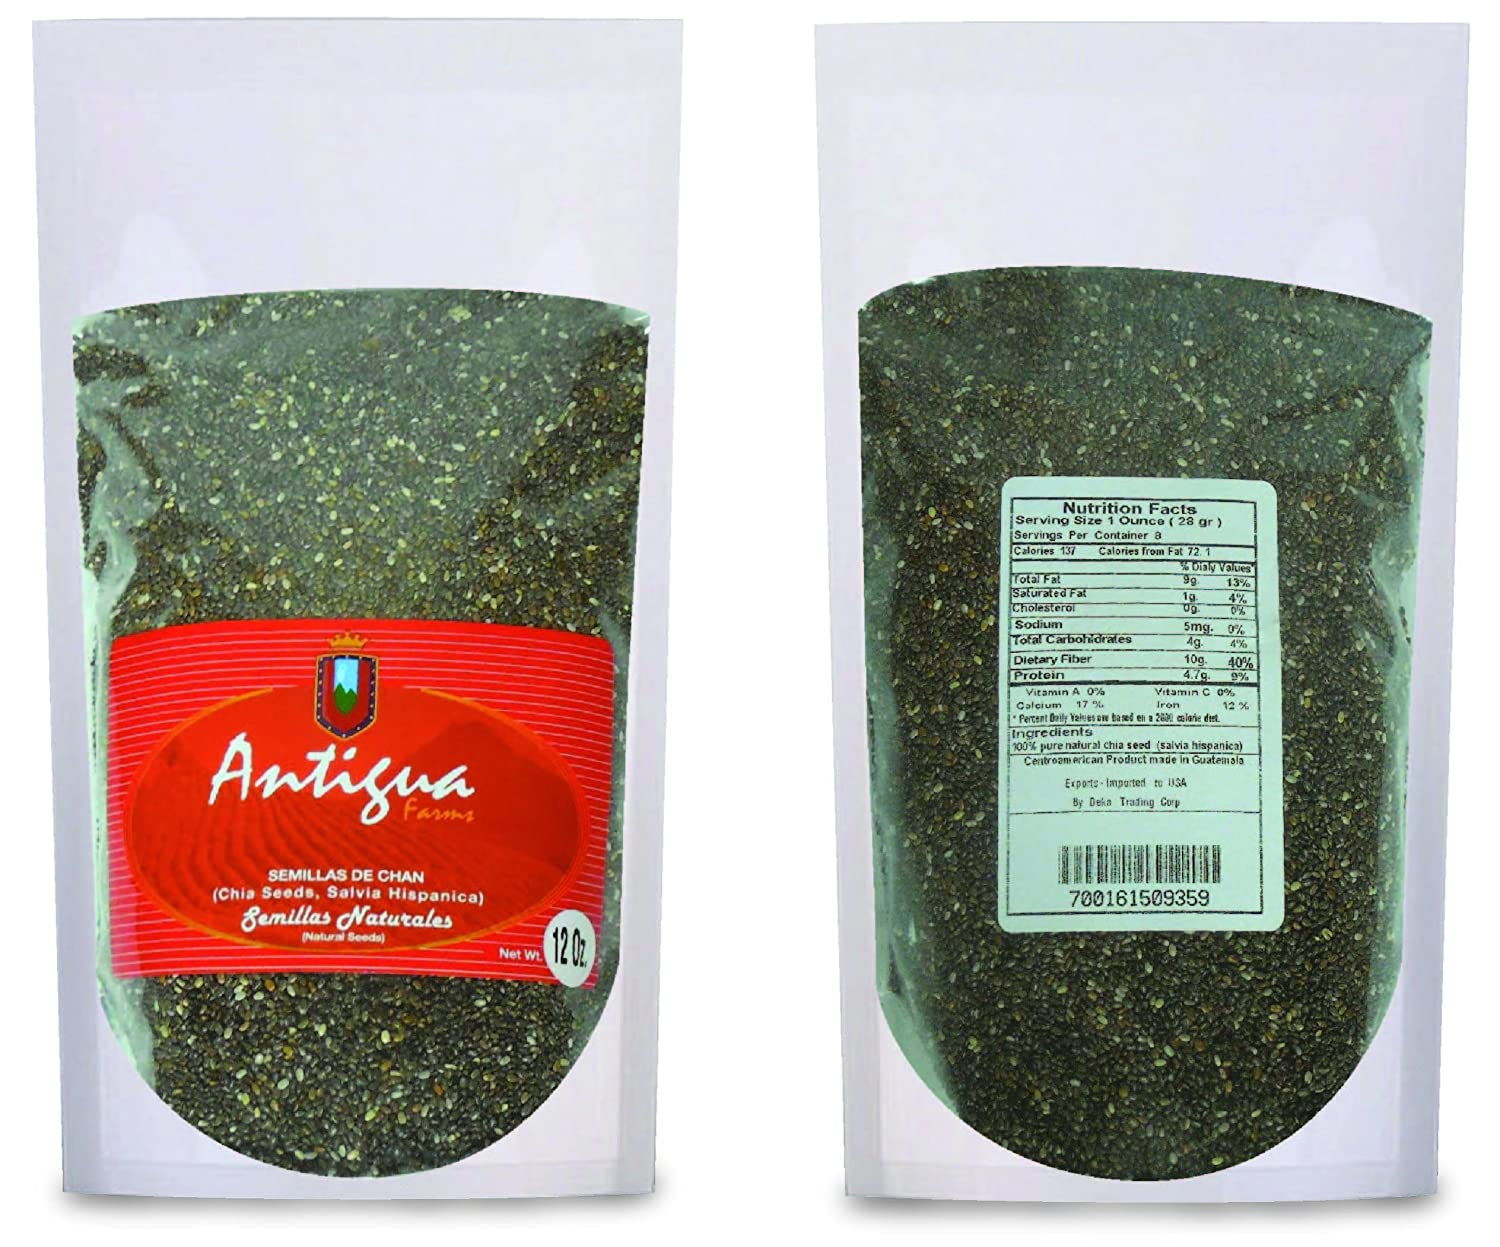 Amazon.com : Chia Seeds (Semillas De Chan, Salvia Hispanica) : Grocery & Gourmet Food